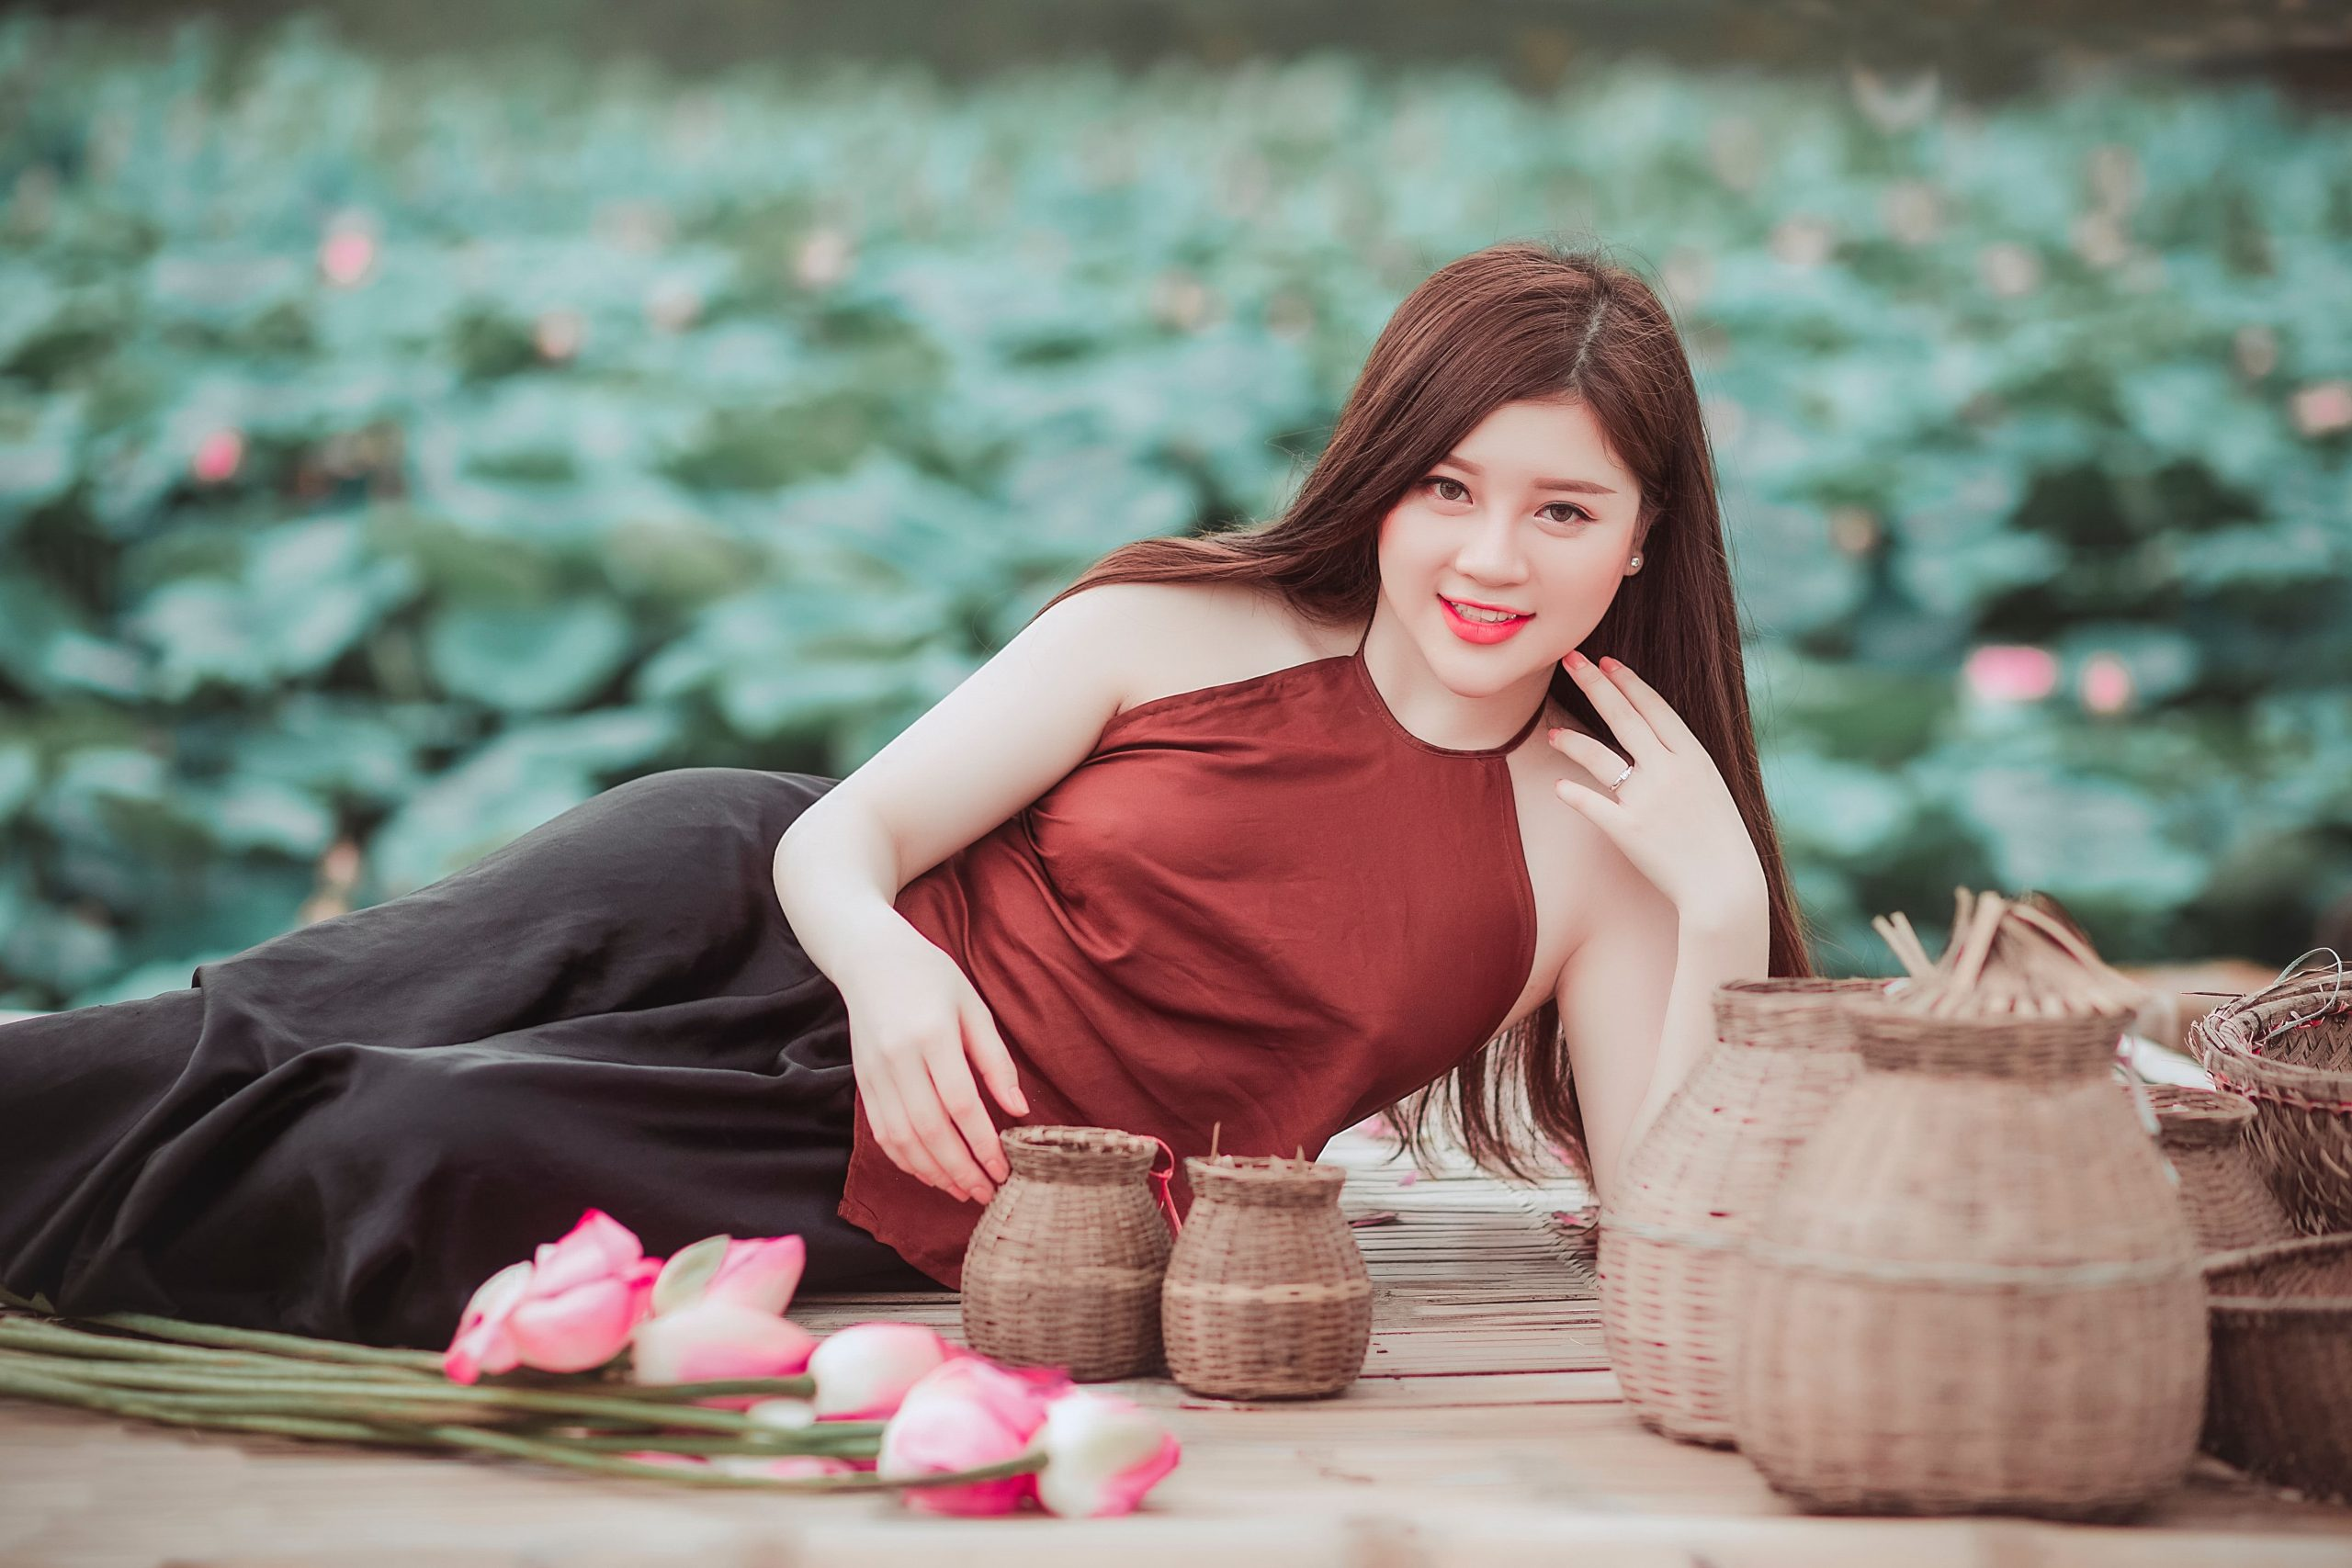 Nyc asian dating site for women